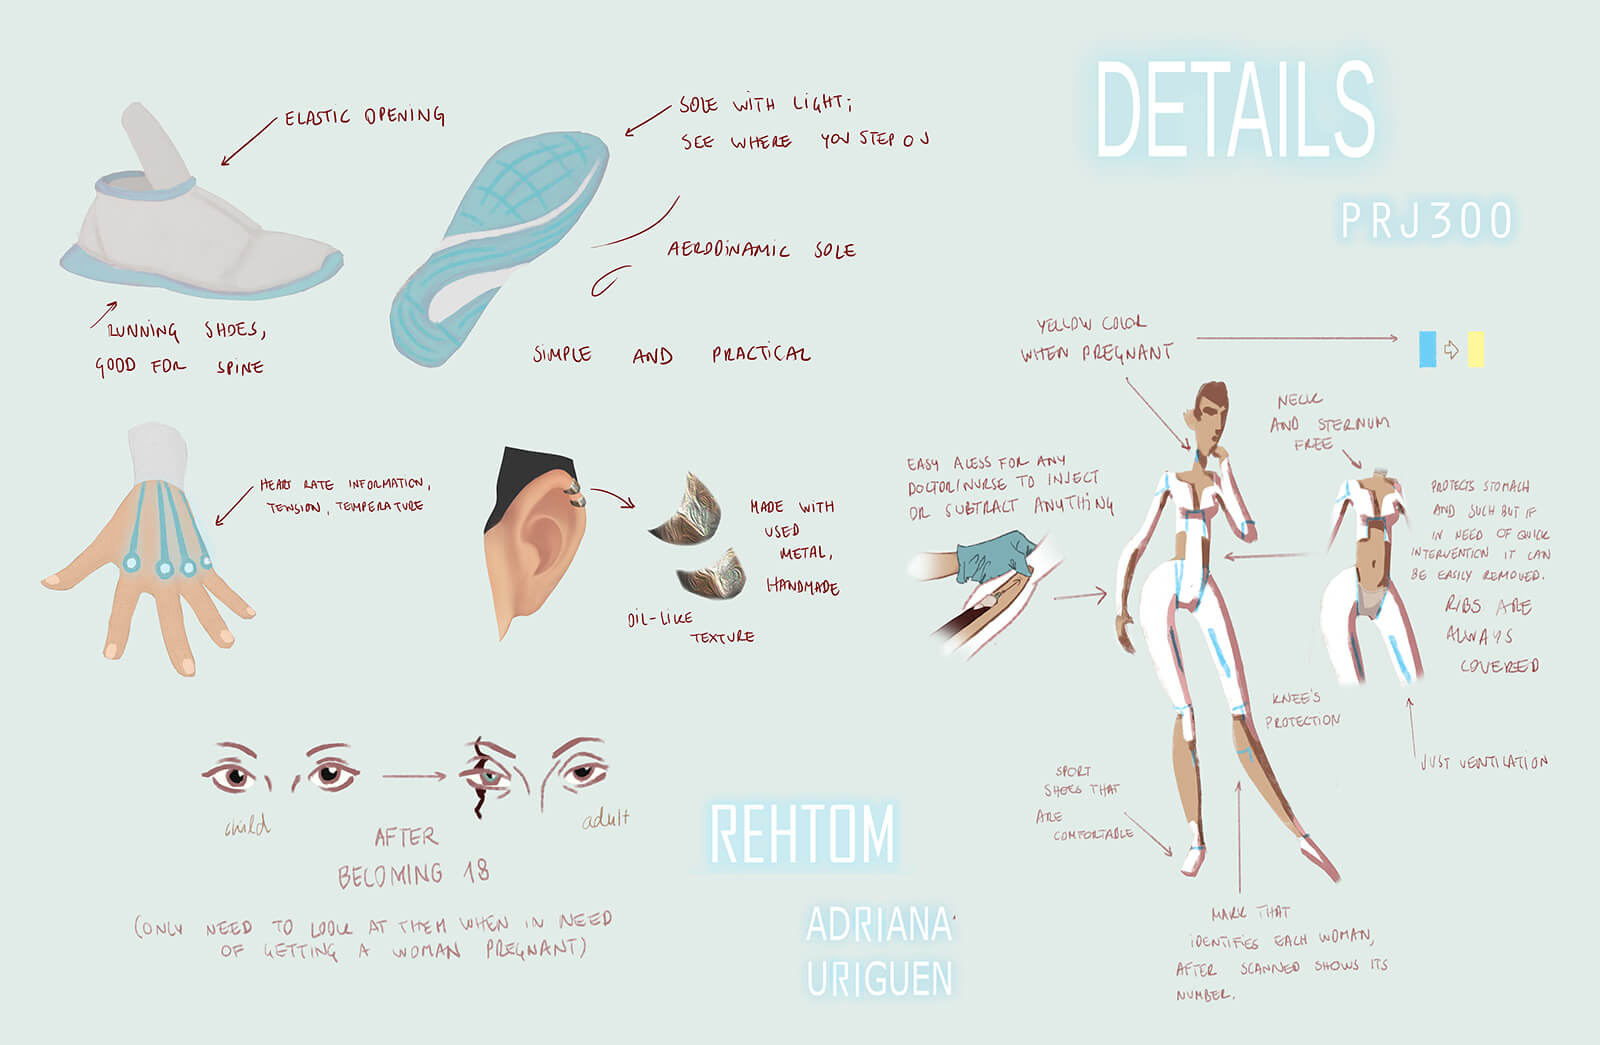 Color details for a futuristic character in the film REA, from shoes, earrings, accent lighting, and scar